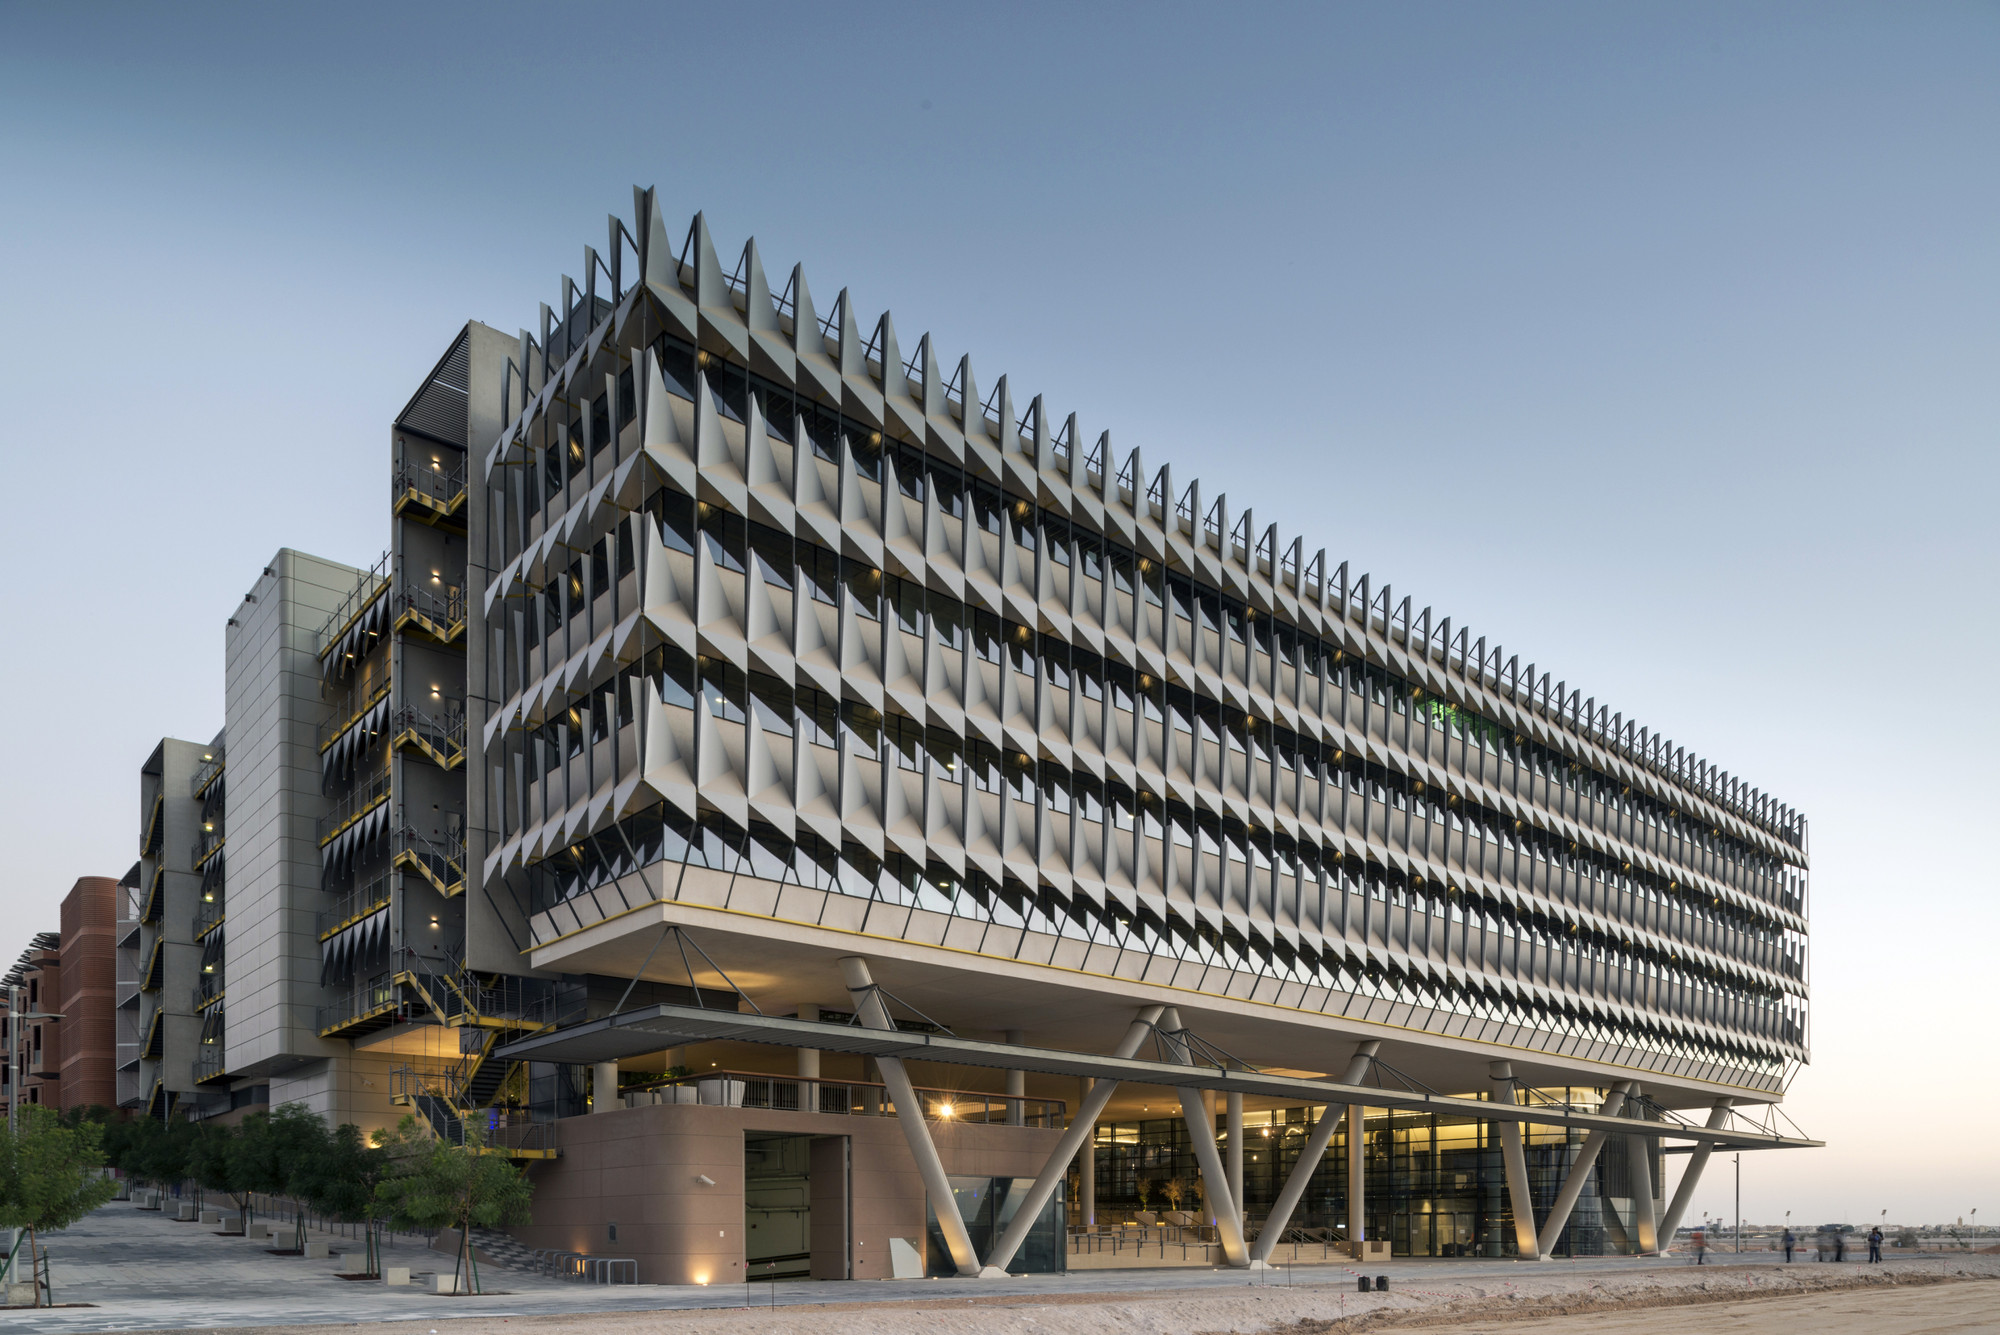 Siemens HQ in Masdar City / Sheppard Robson, © Paul McMullin